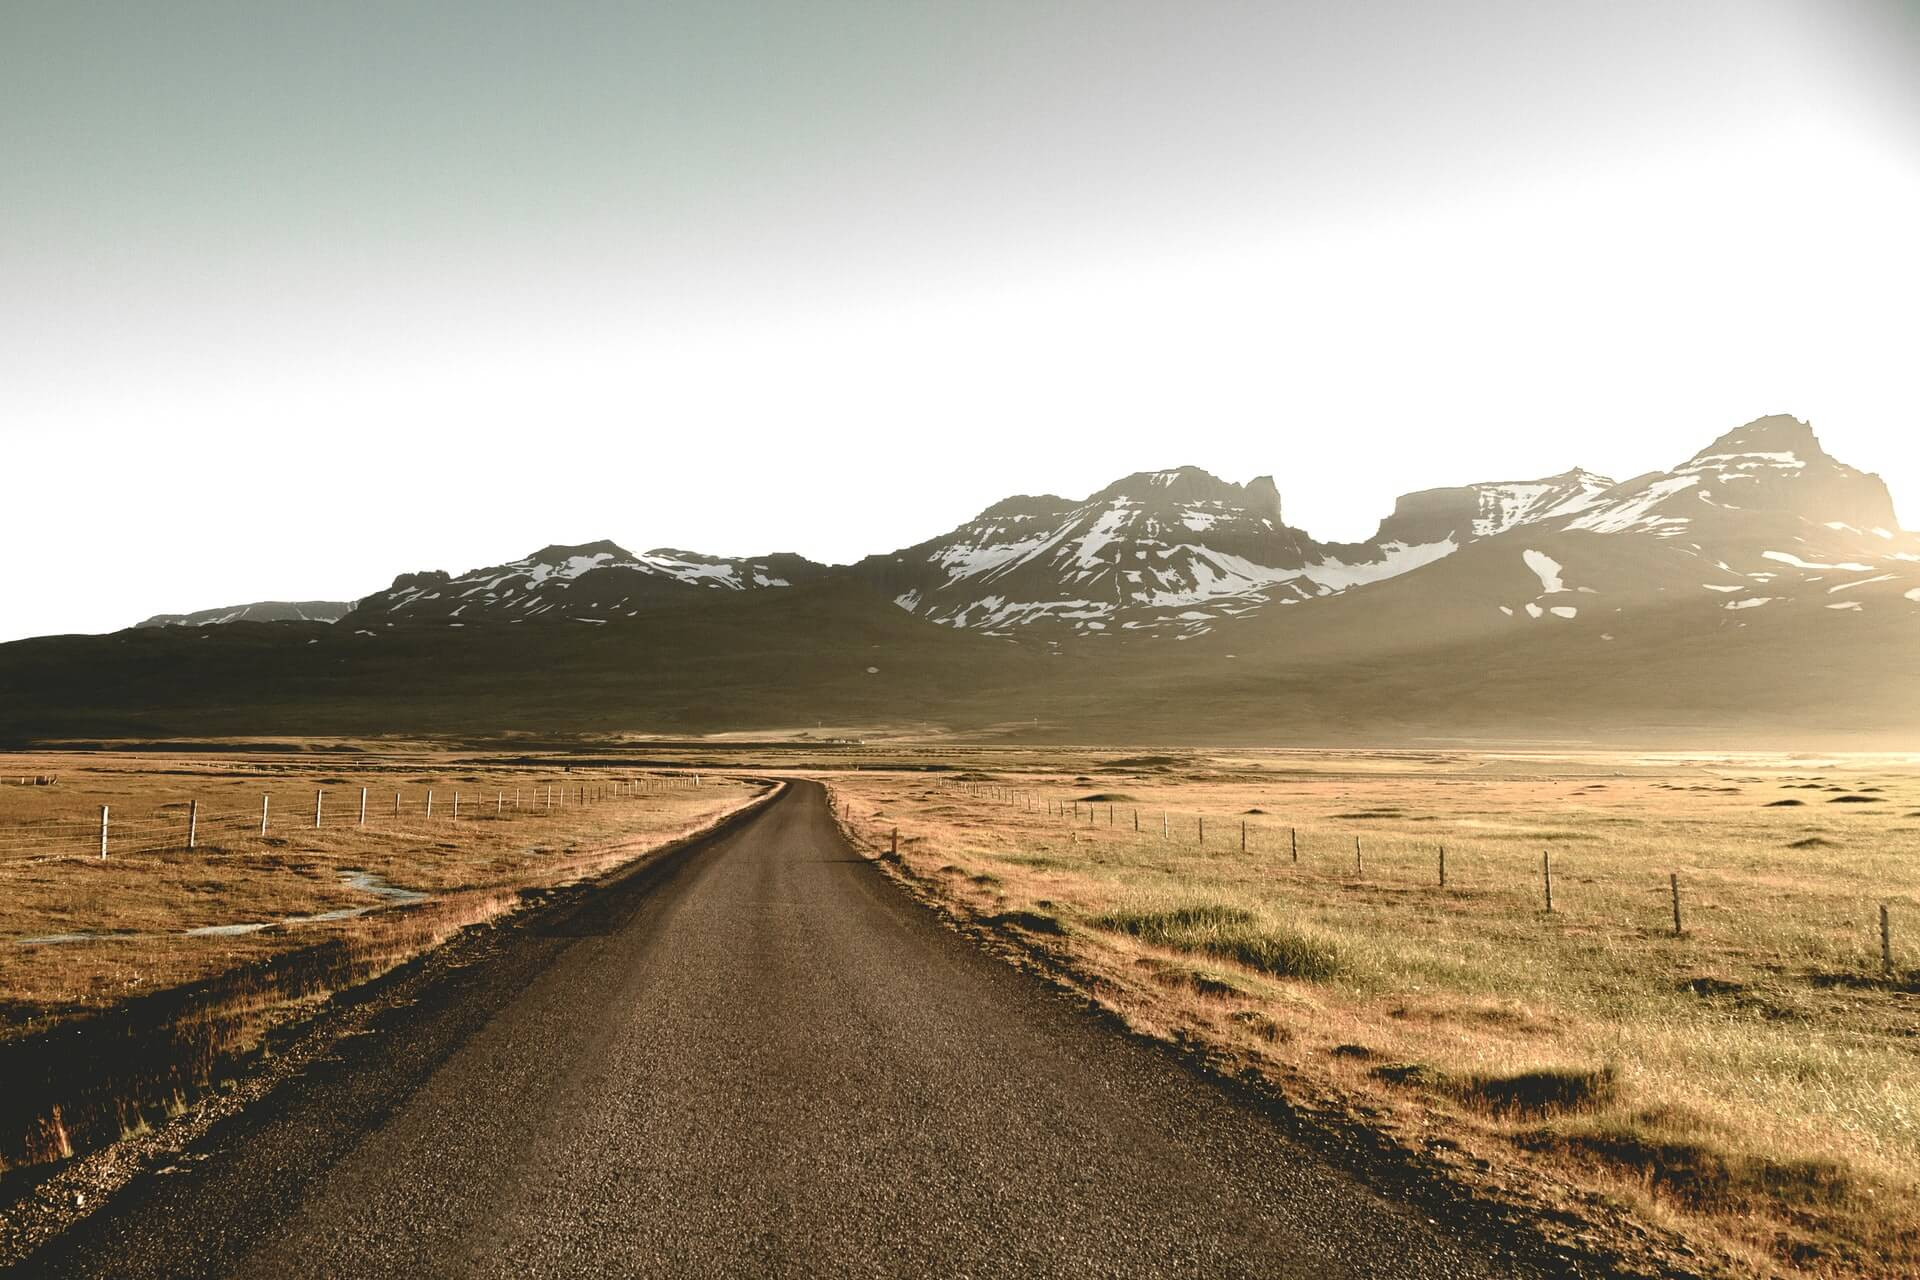 An open road, running past some fields with mountains in the distance